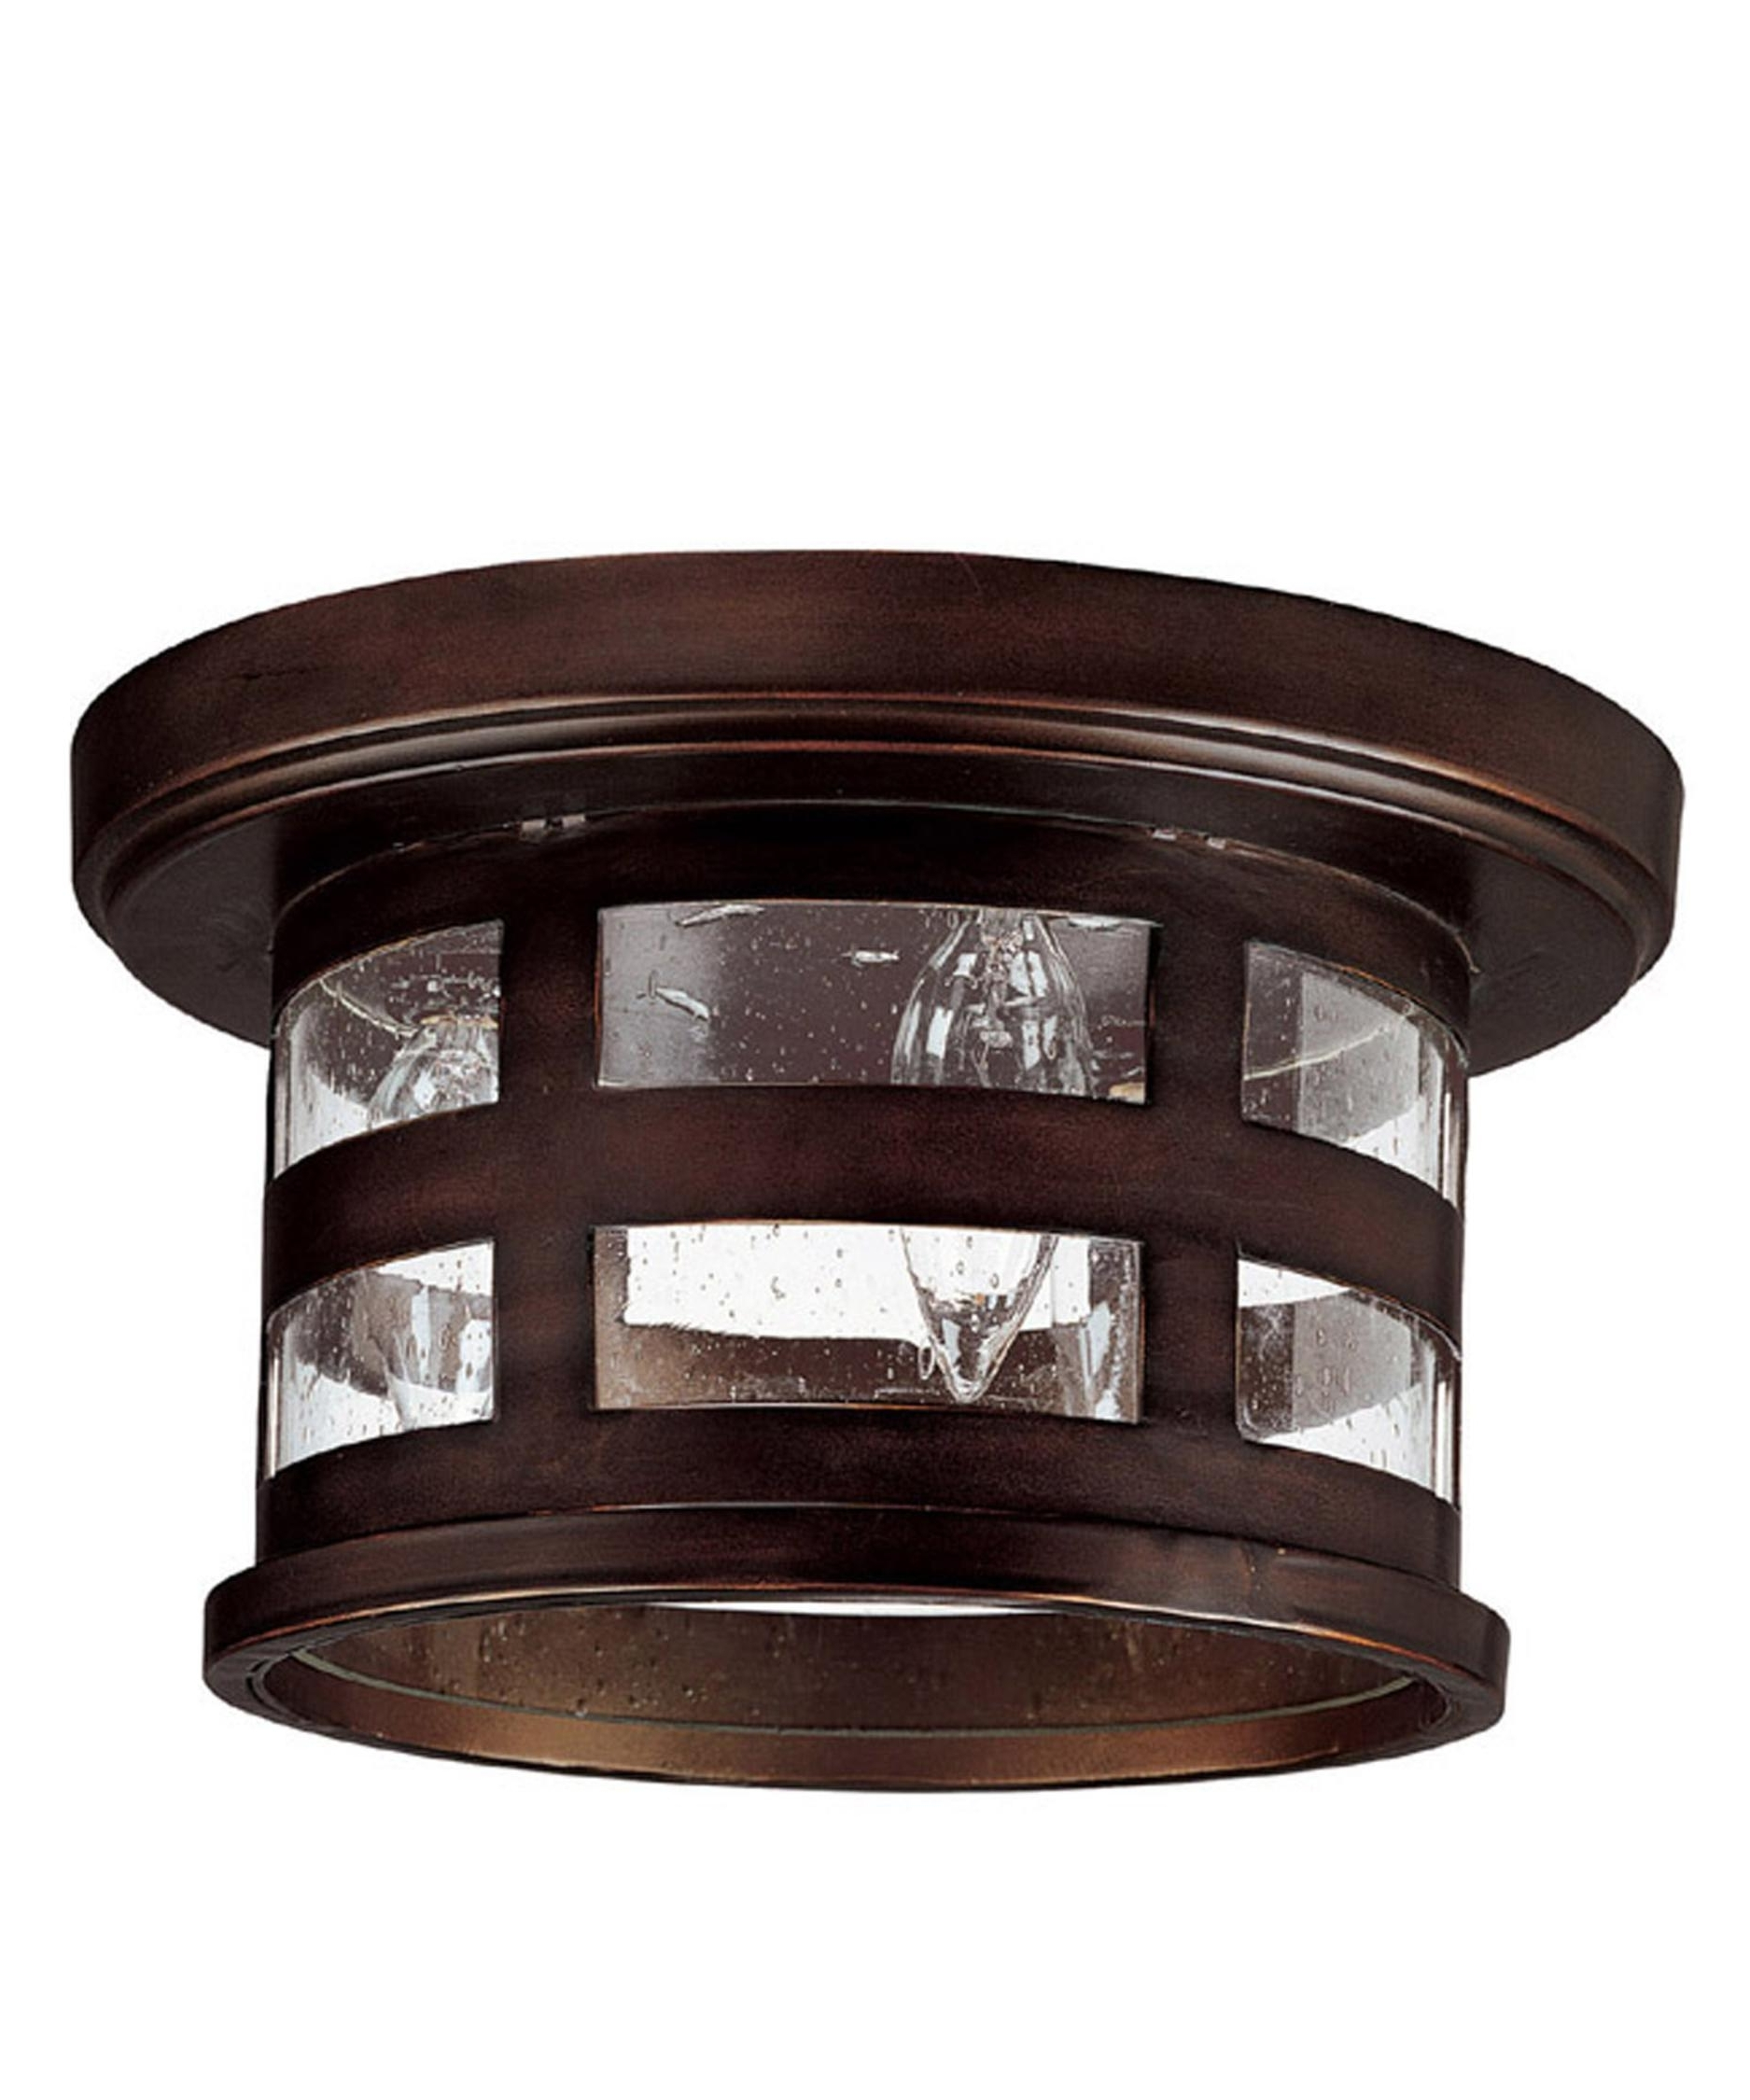 Outdoor Ceiling Flush Mount Lights Throughout Most Up To Date Capital Lighting 9956 Mission Hills 11 Inch Wide 3 Light Outdoor (View 16 of 20)